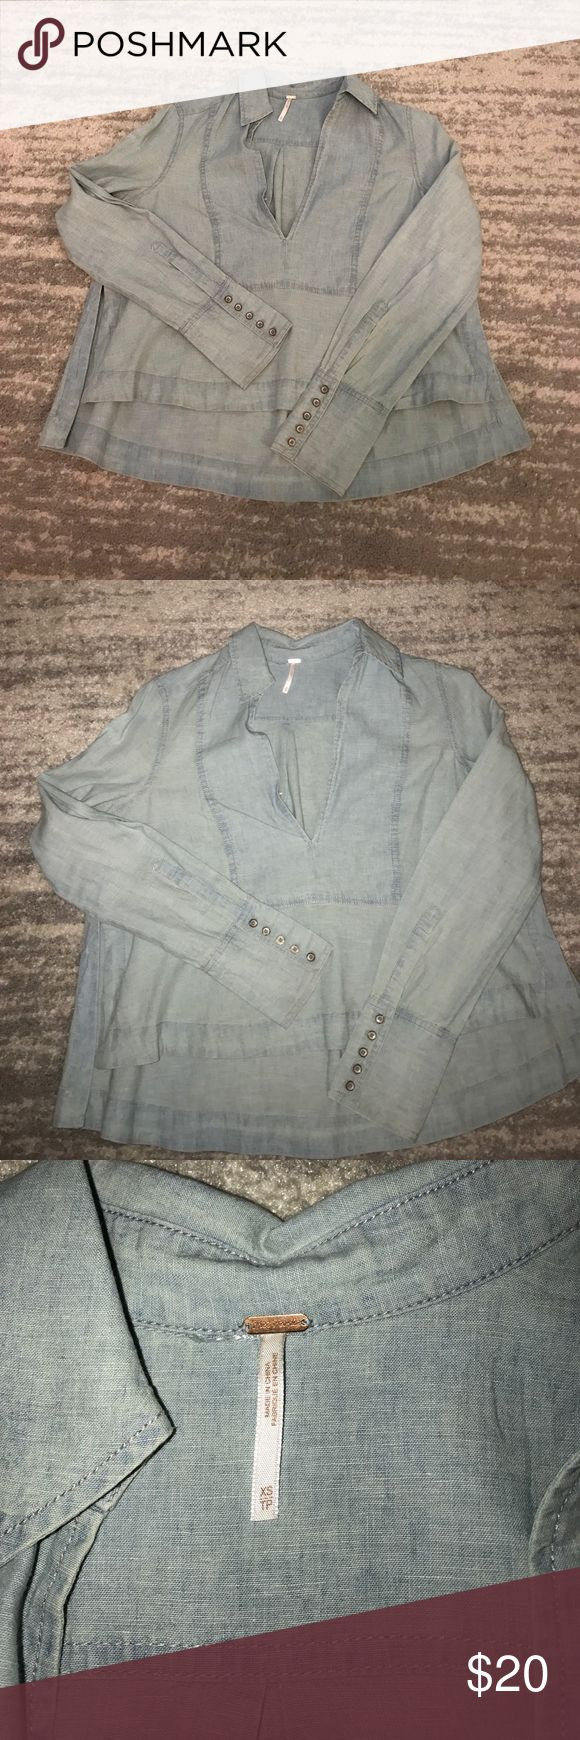 Free People Linen/Cotton Tunic ✨ Adorable free people tunic! Size XS, In perfect condition EXCEPT PLEASE SEE PHOTO of the clasp closure on the front of the top. It needs to be repaired but that is a very easy and inexpensive fix at your local dry cleaner! Only worn twice with no other flaws. Super cute look for a summer night! Very soft linen/cotton blend. Great price for this brand, MAKE AN OFFER ‼️ Free People Tops Blouses